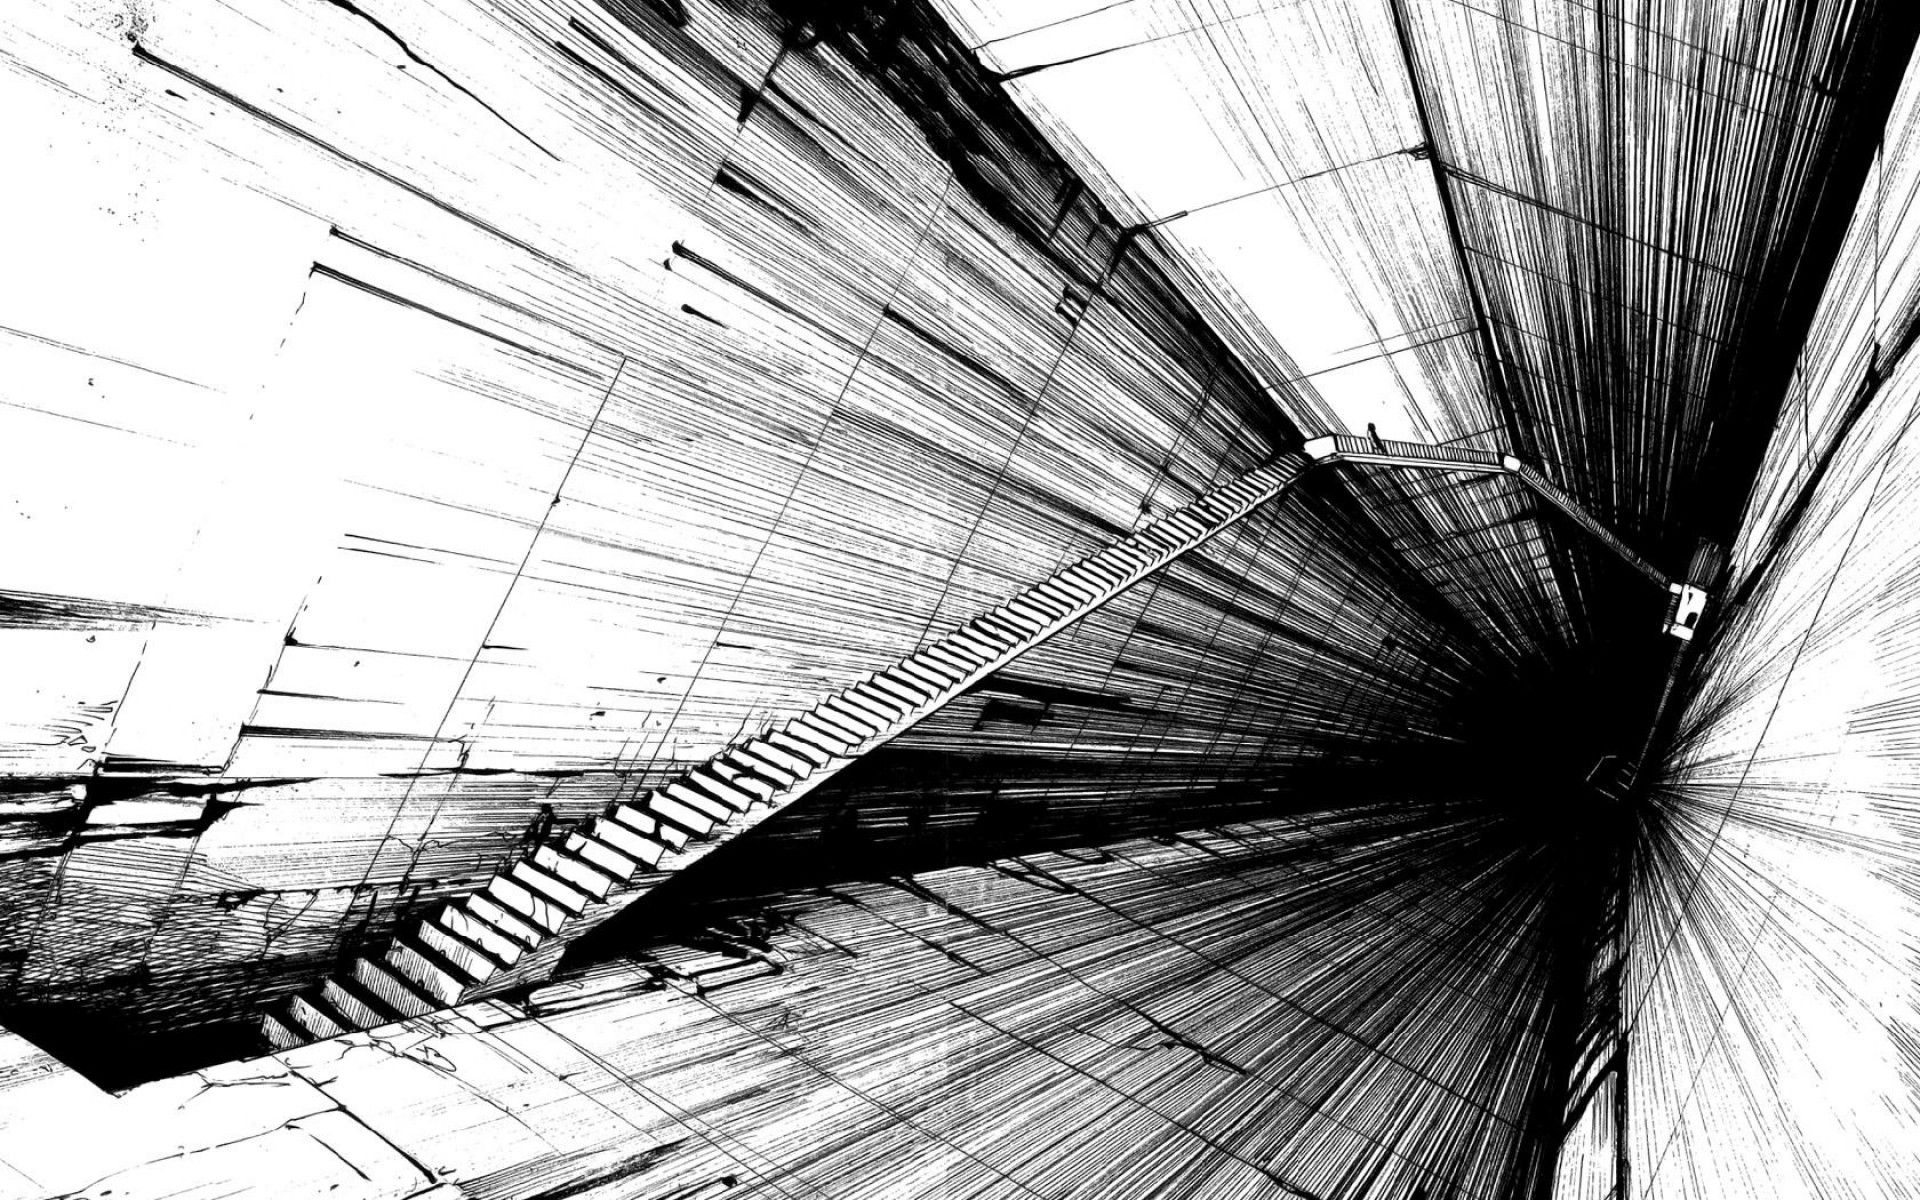 black and white paintings - Google Search | Paintings | Pinterest ...